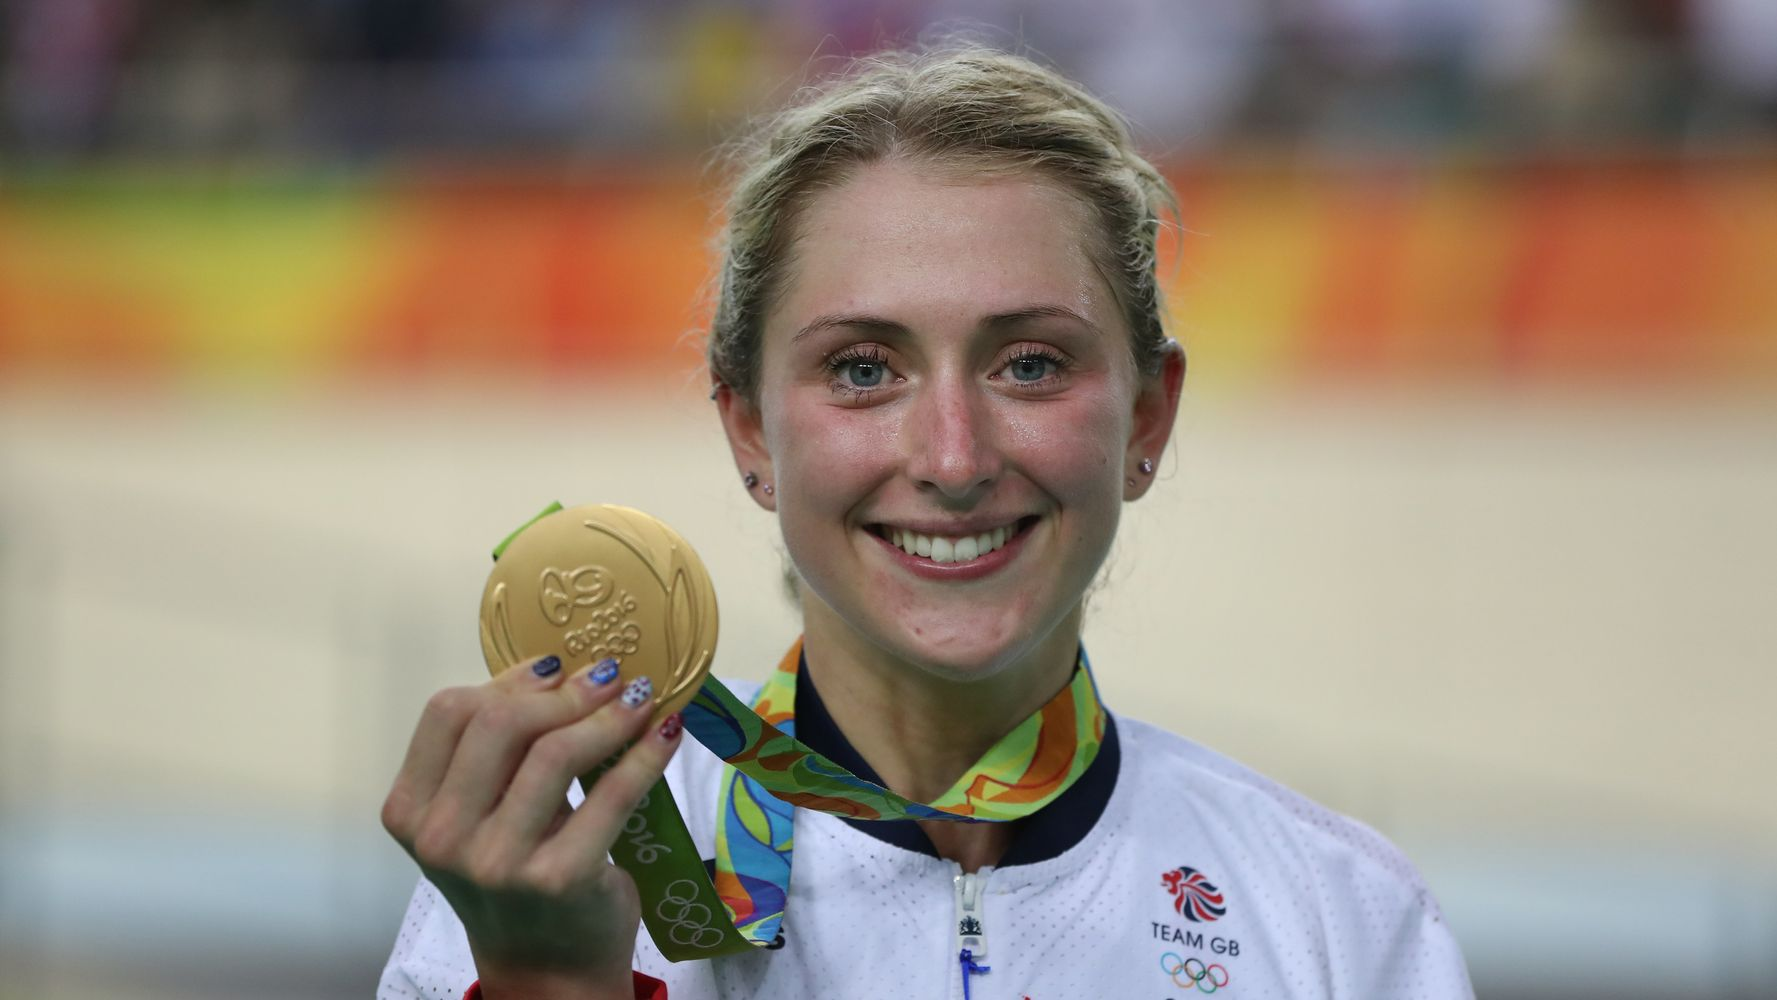 Olympic Cyclist Laura Trott On Why She Wants To Inspire More Girls ...